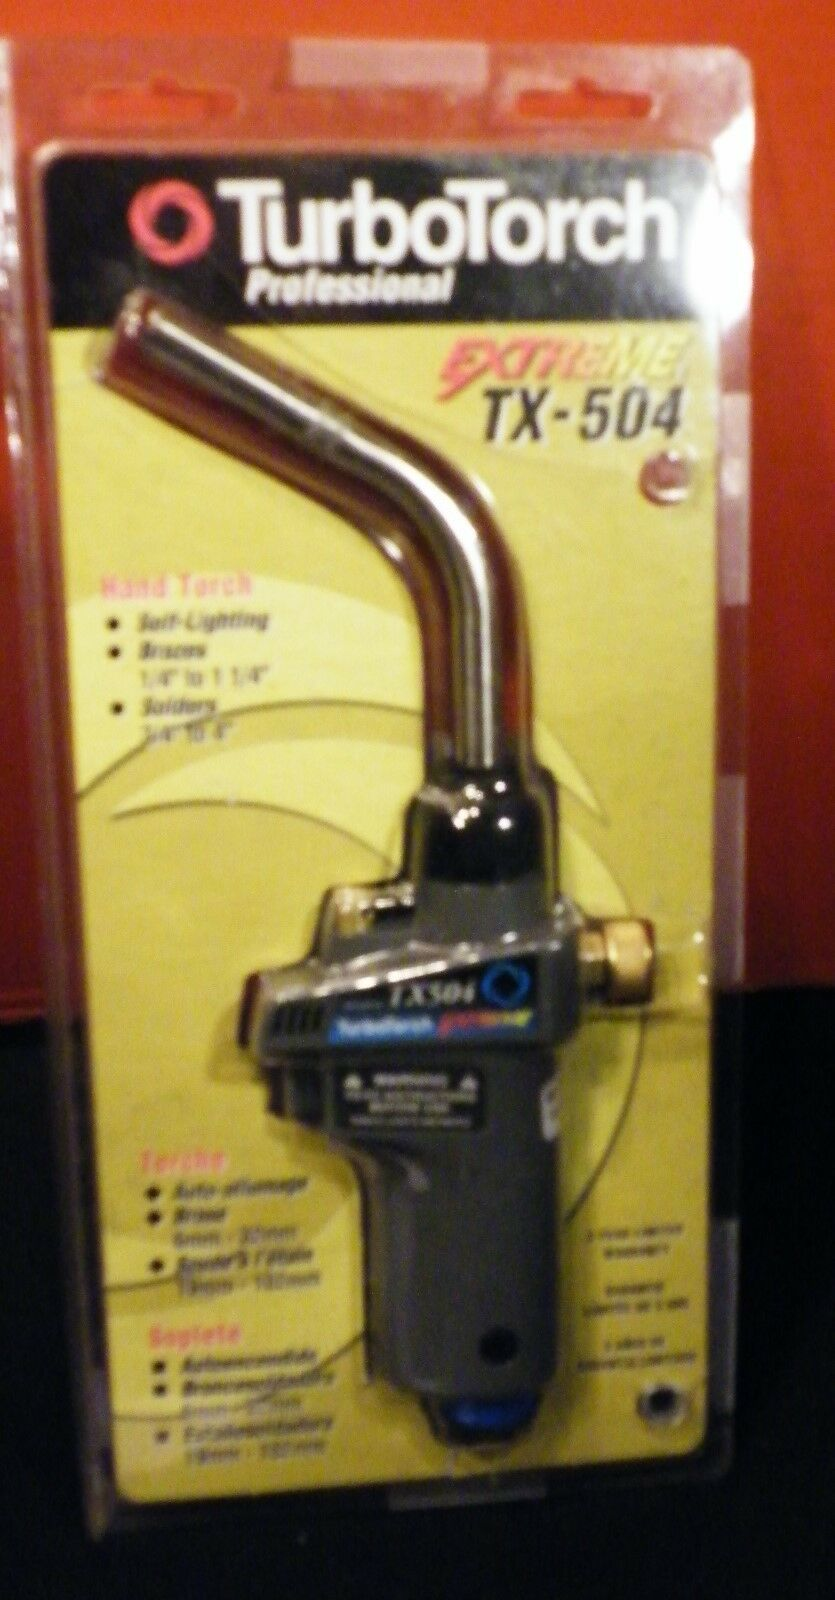 TURBO TORCH TX 504 HAND TORCH MAP-PRO FUEL SELF IGNITING